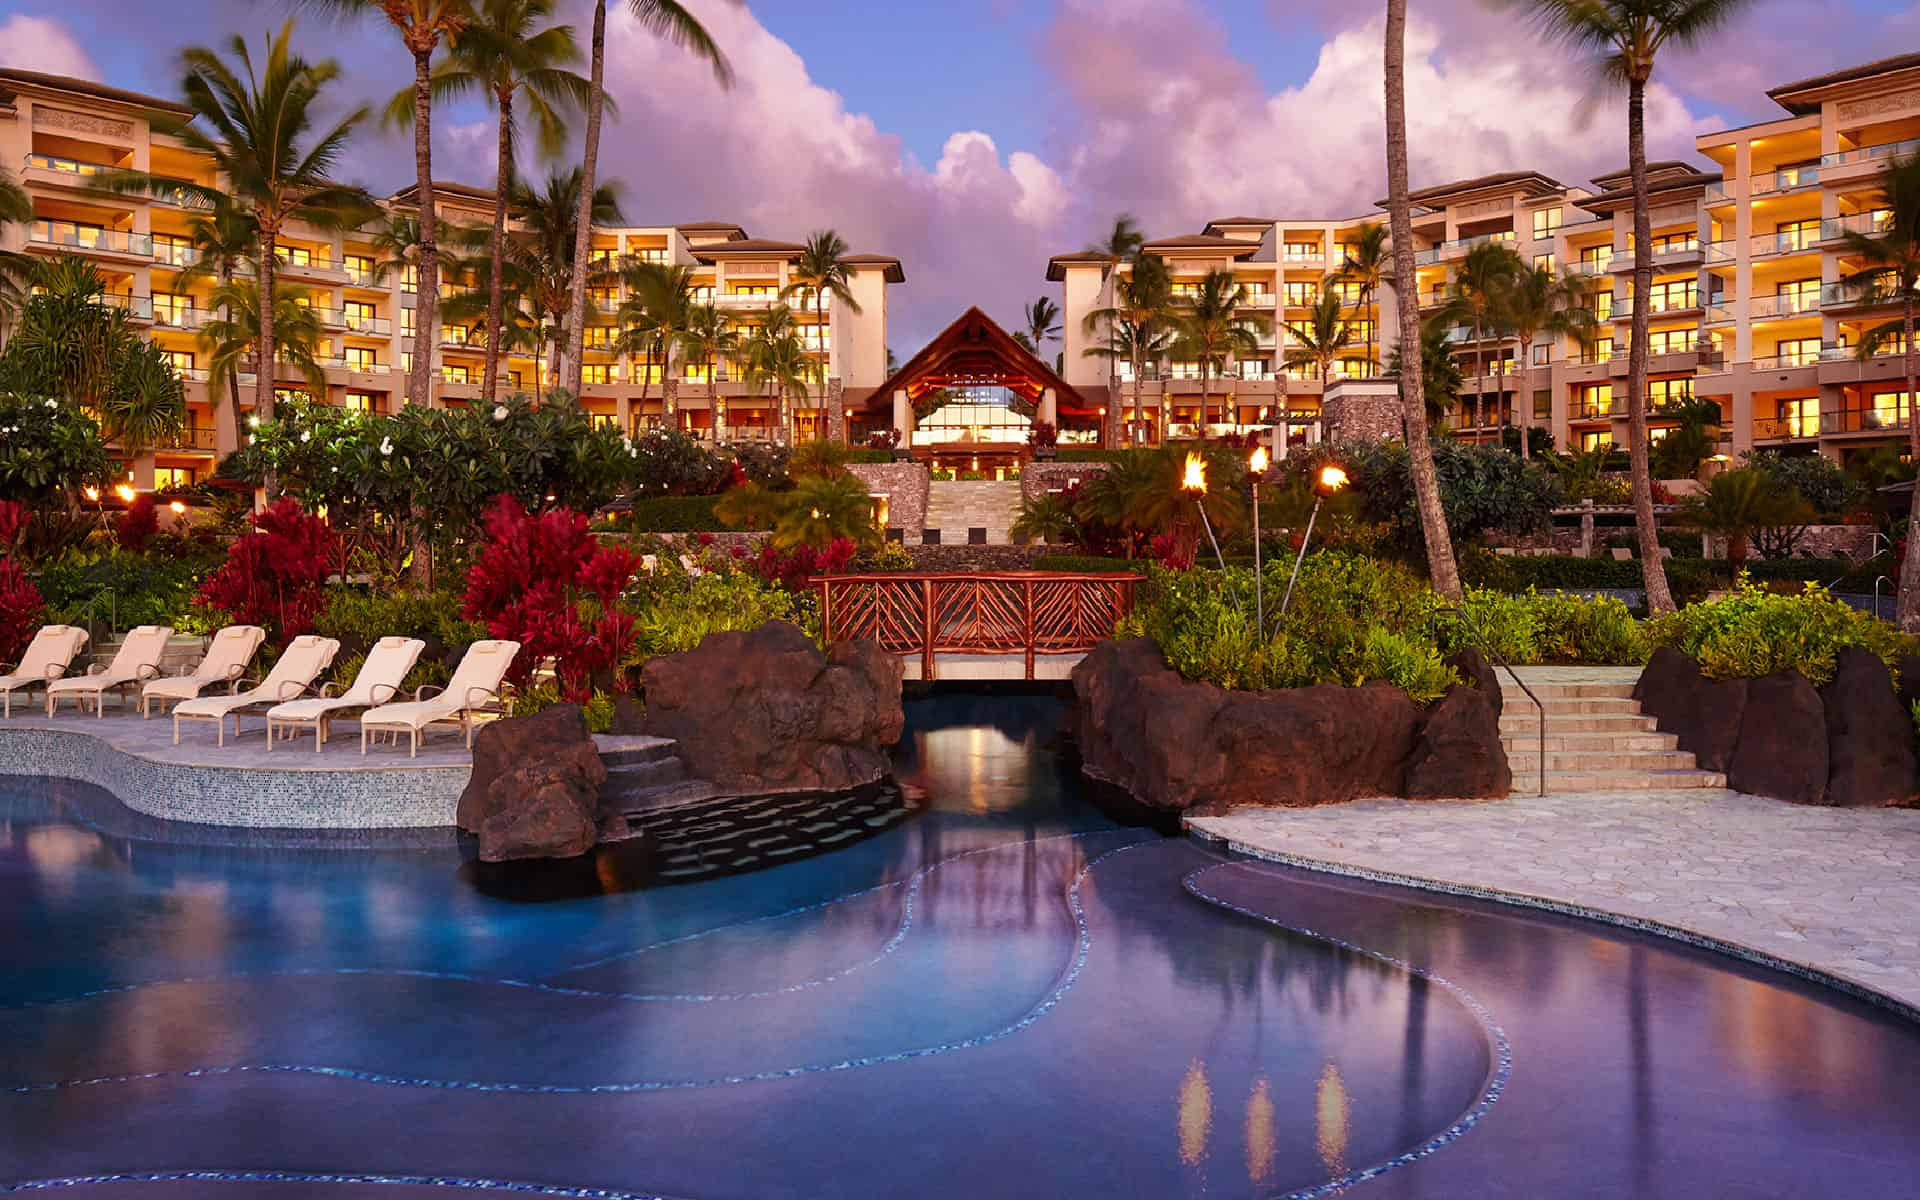 Travel Agency Hawaii Resort Montage Kapa